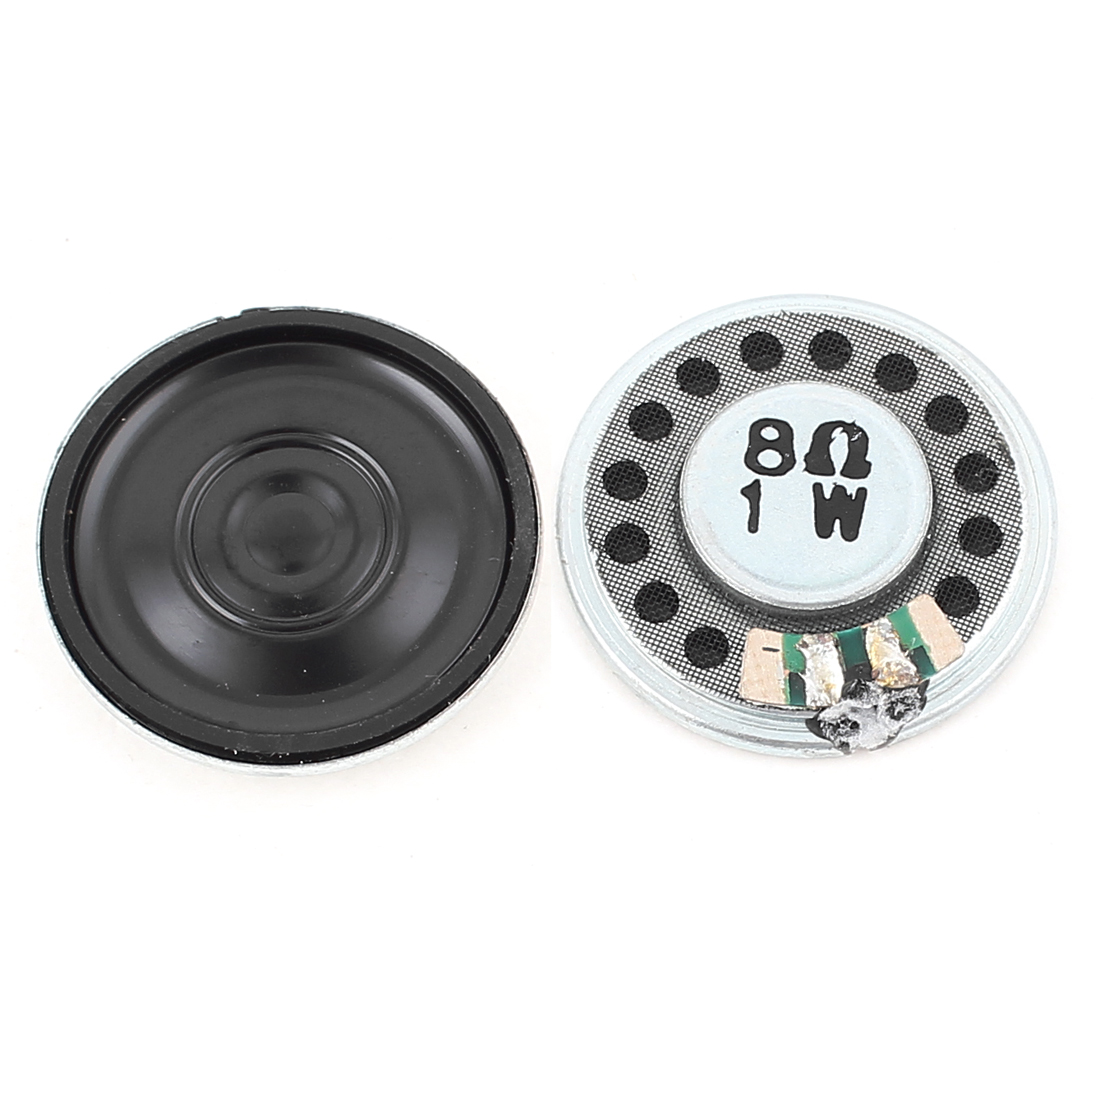 2 Pcs 1W 8 Ohm 27mm Round Inside Magnet Electronic Speaker Loudspeaker